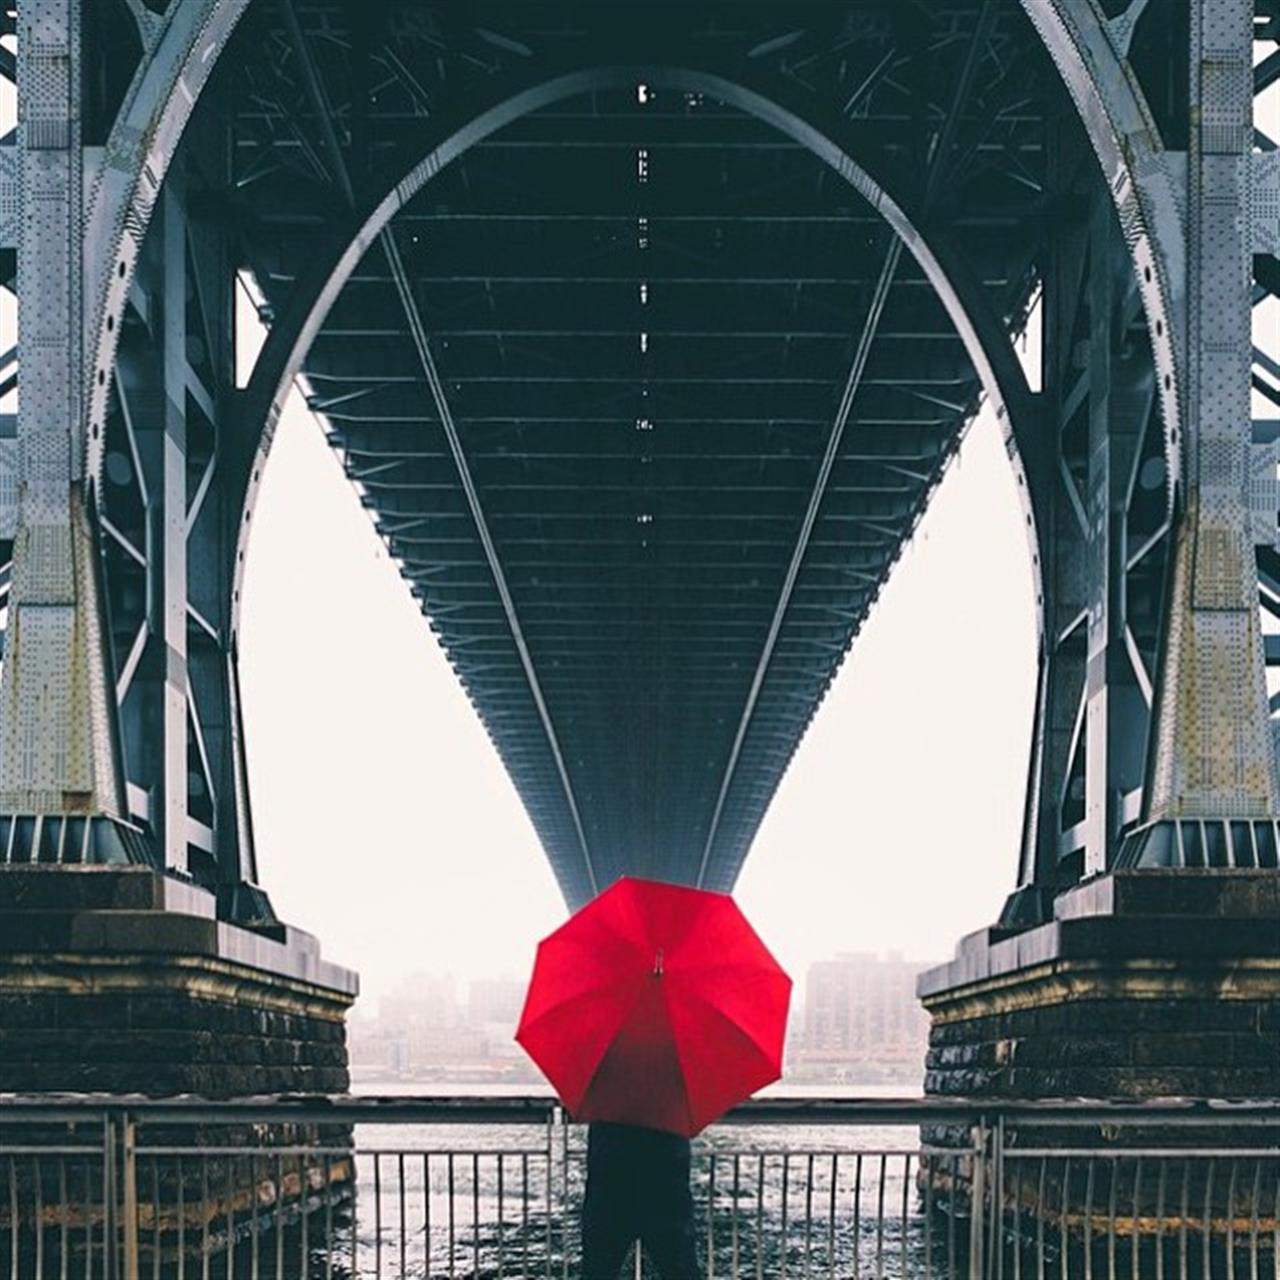 The Red #Umbrella (Photo from @kurtdee)